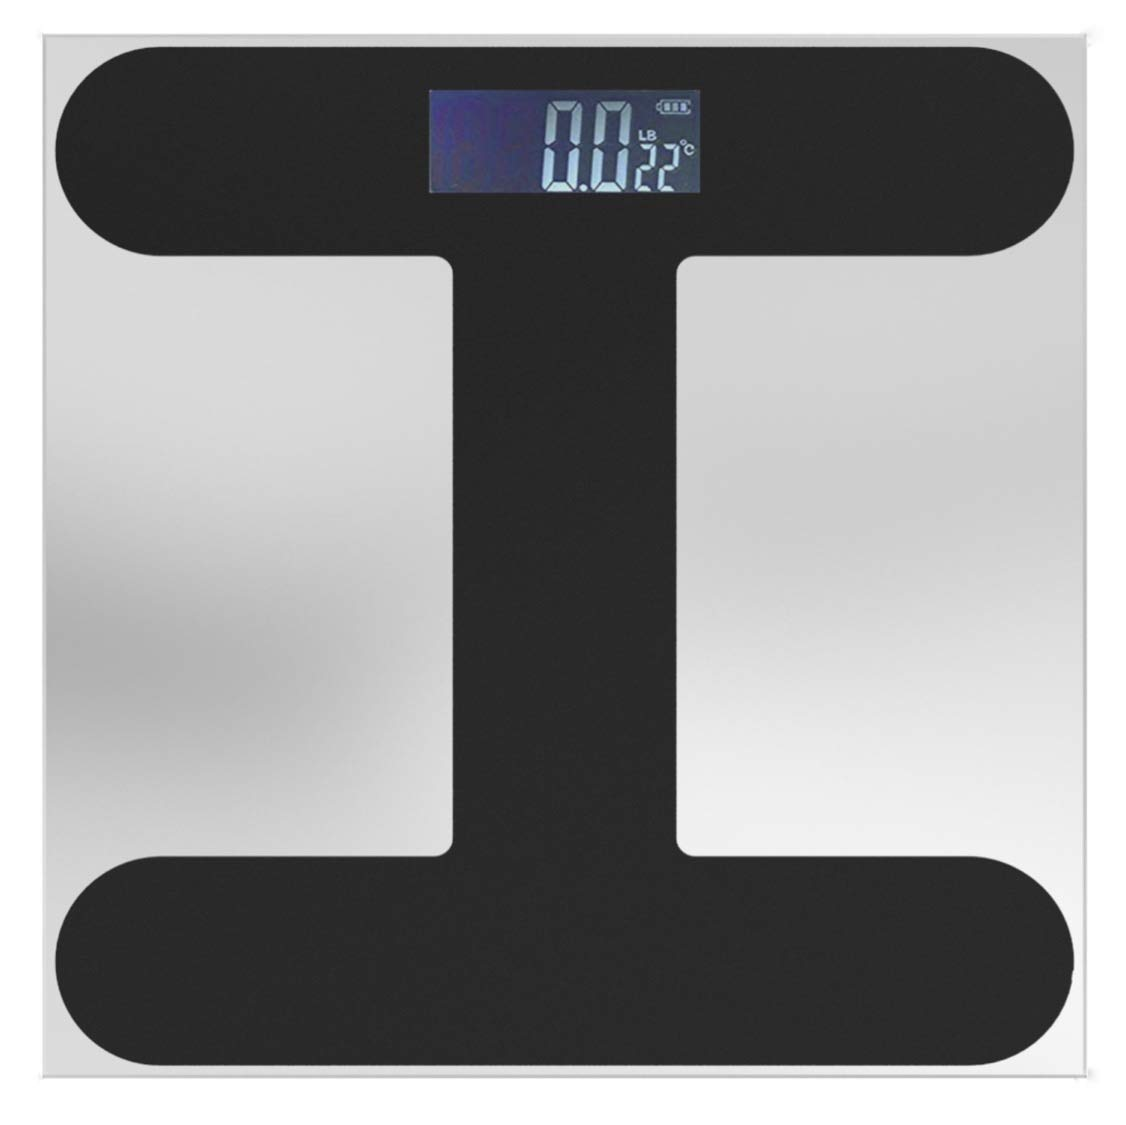 Digital Body Weight Scale with Step-on Technology, Large Glass Top, Wide Range of 400 lb, Precision Accuracy at 0.2 lb